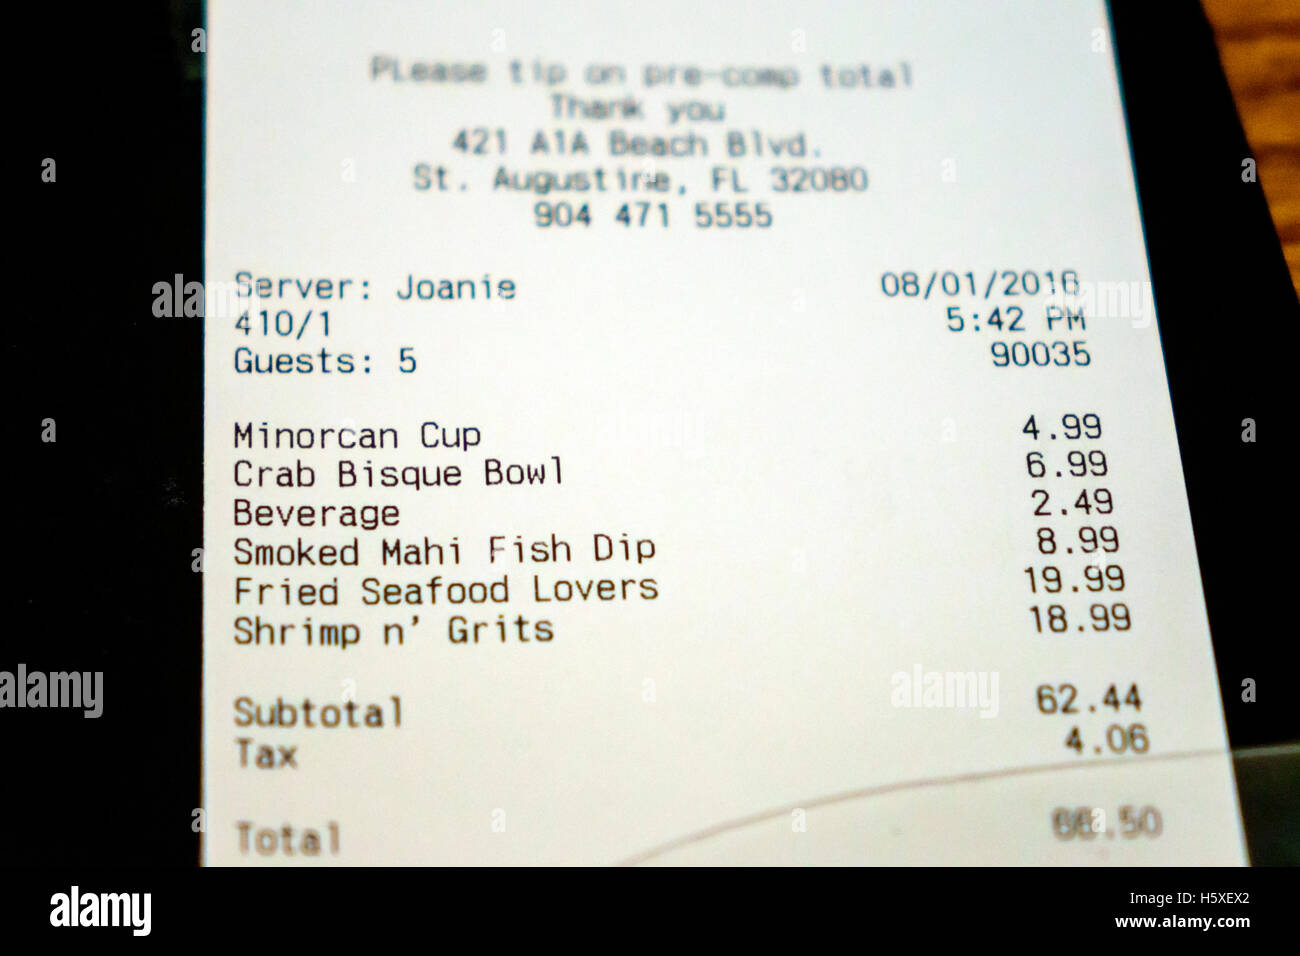 St. Saint Augustine Florida Sunset Grille Restaurant Bill Receipt Prices  Lunch  Bill Receipt